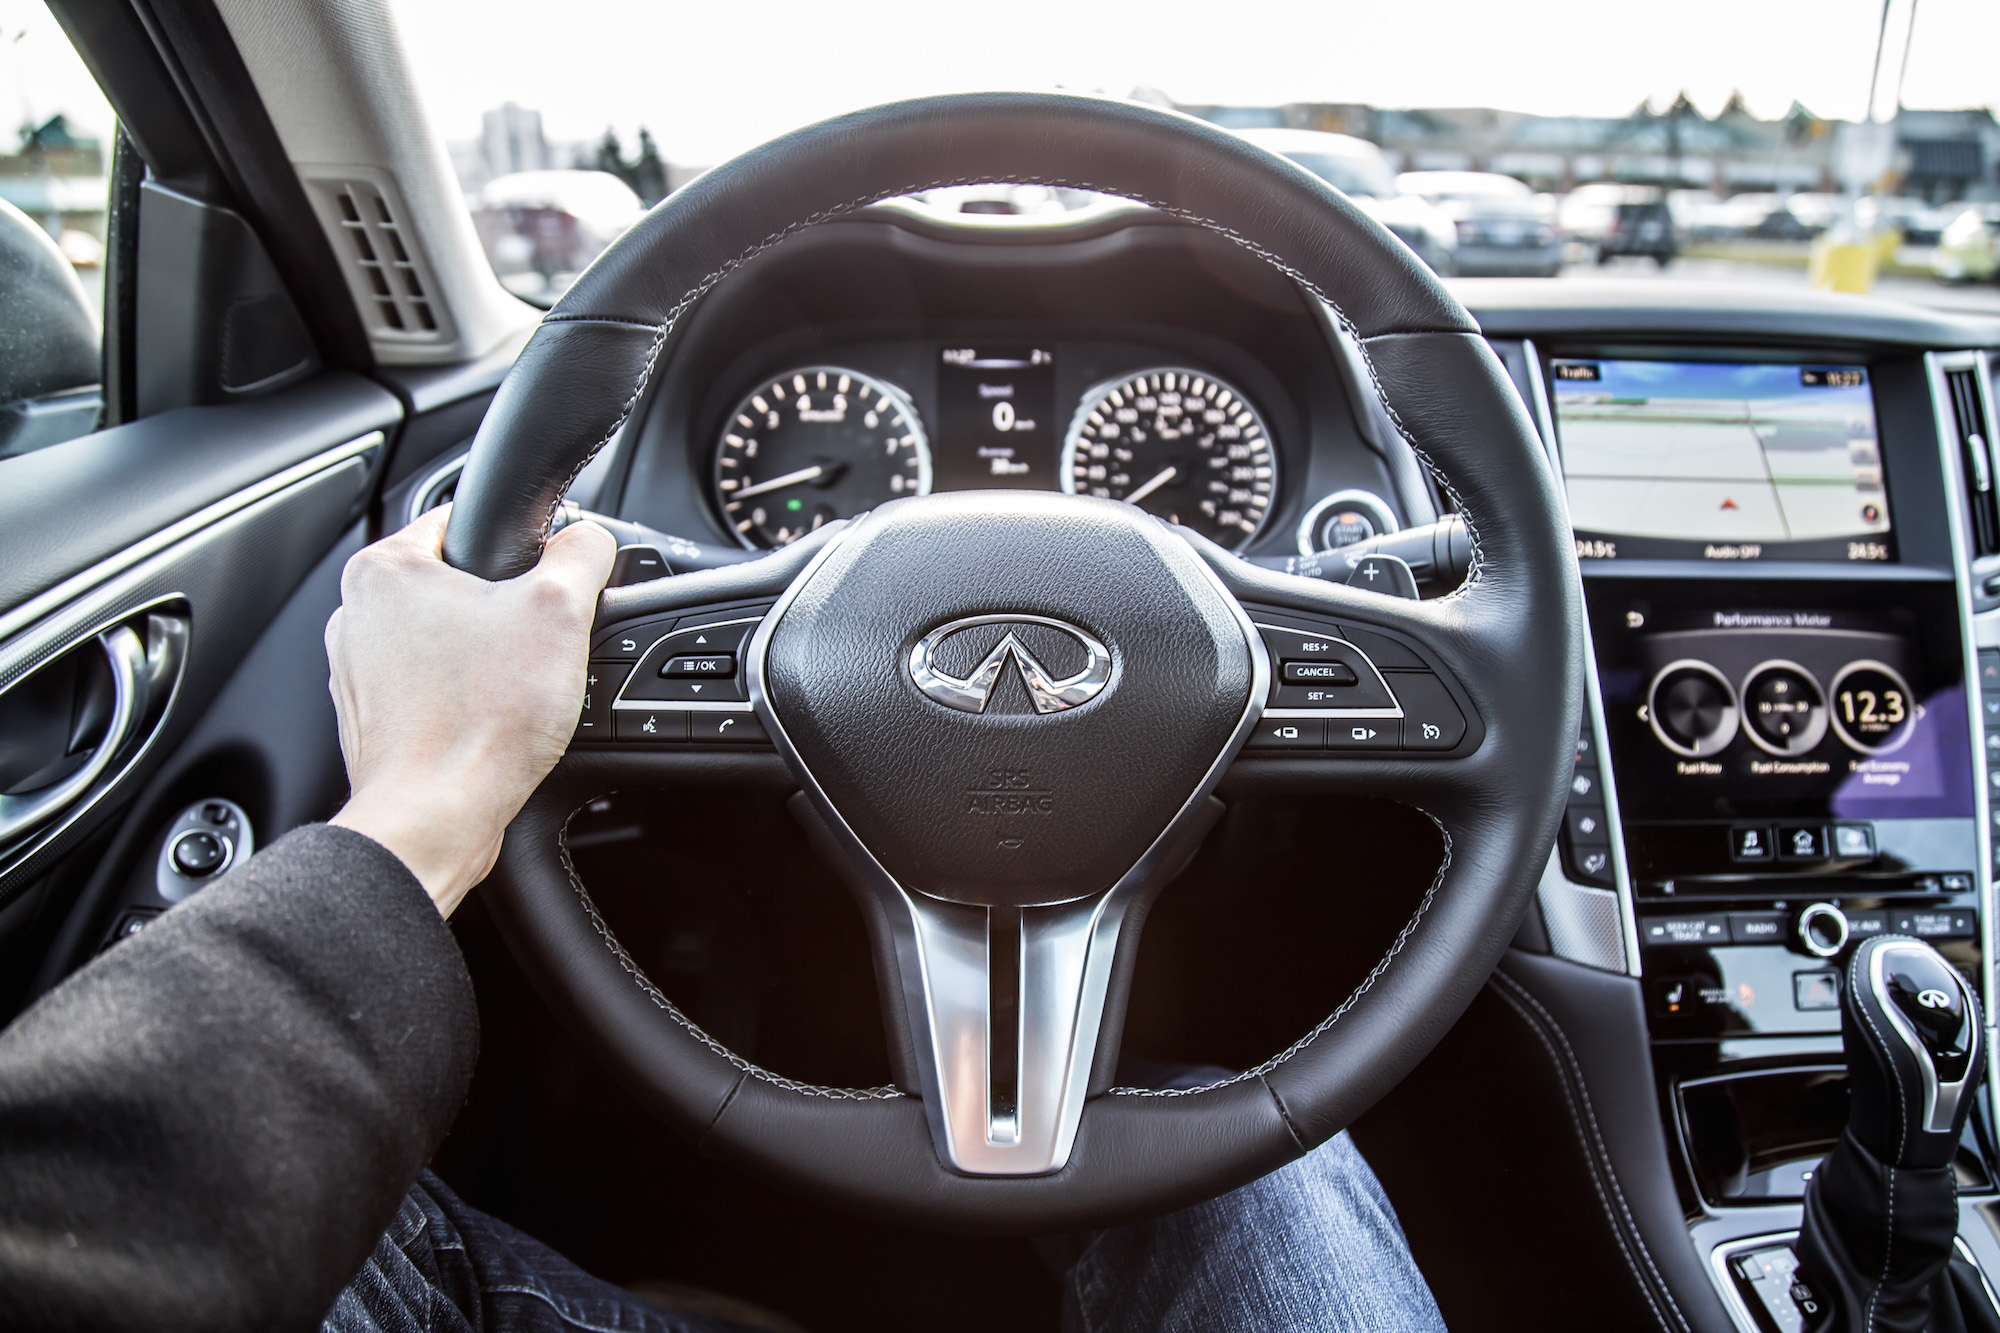 Front Wheel Drive Cars >> 2018 Infiniti Q50 3.0t Sport AWD Review | Canadian Auto Review